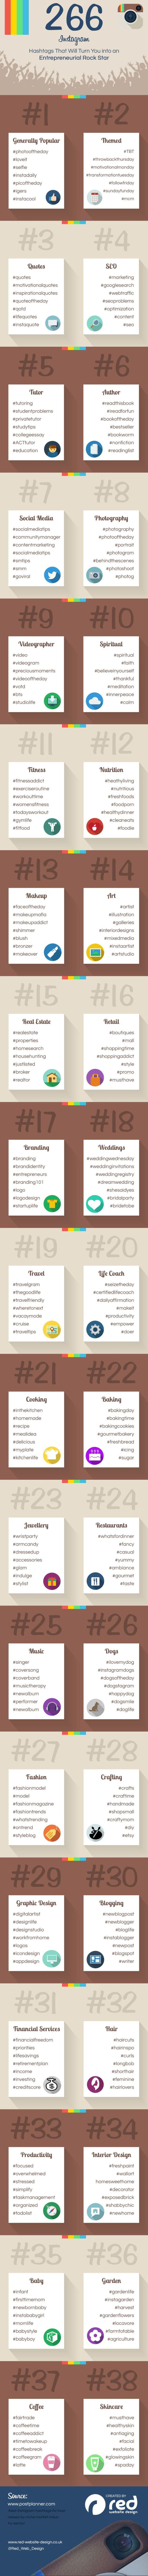 Hashtags to help you get likes and grow your Instagram following